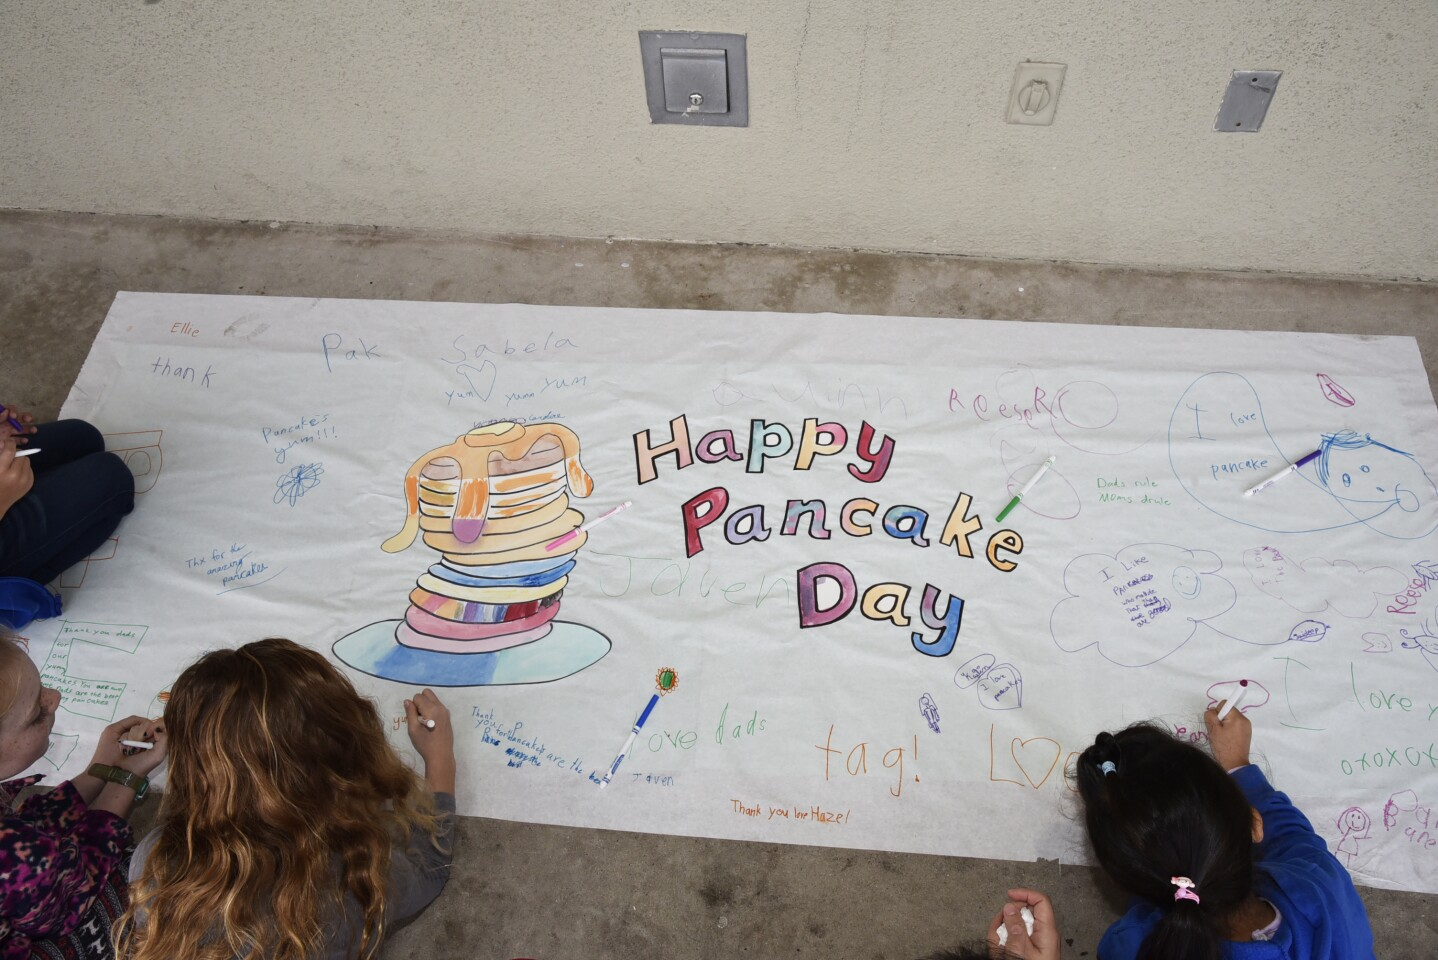 Students sign the Pancake Day poster